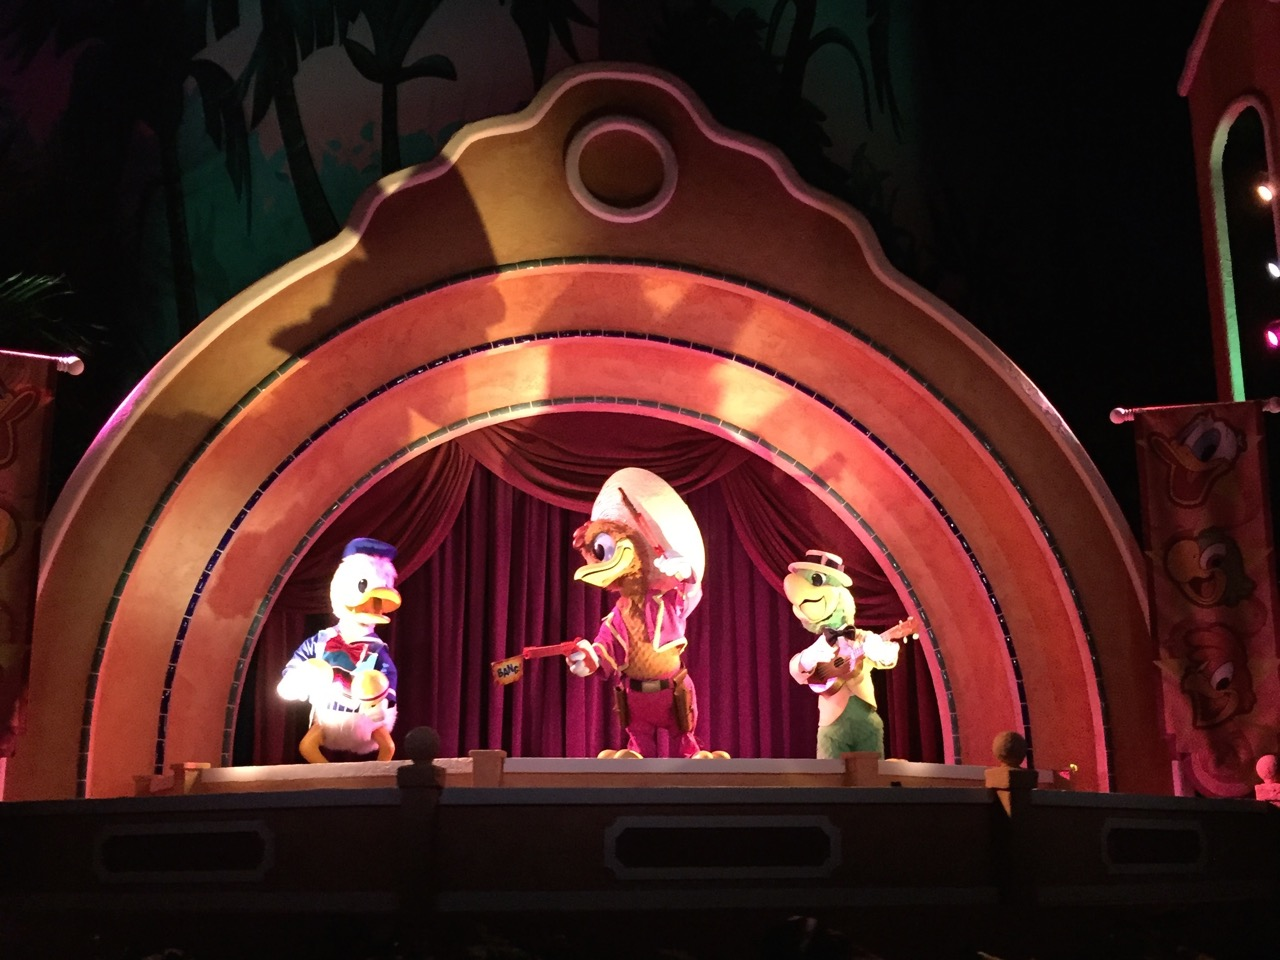 Gran Fiesta Tour Starring The Three Caballeros Animatronics